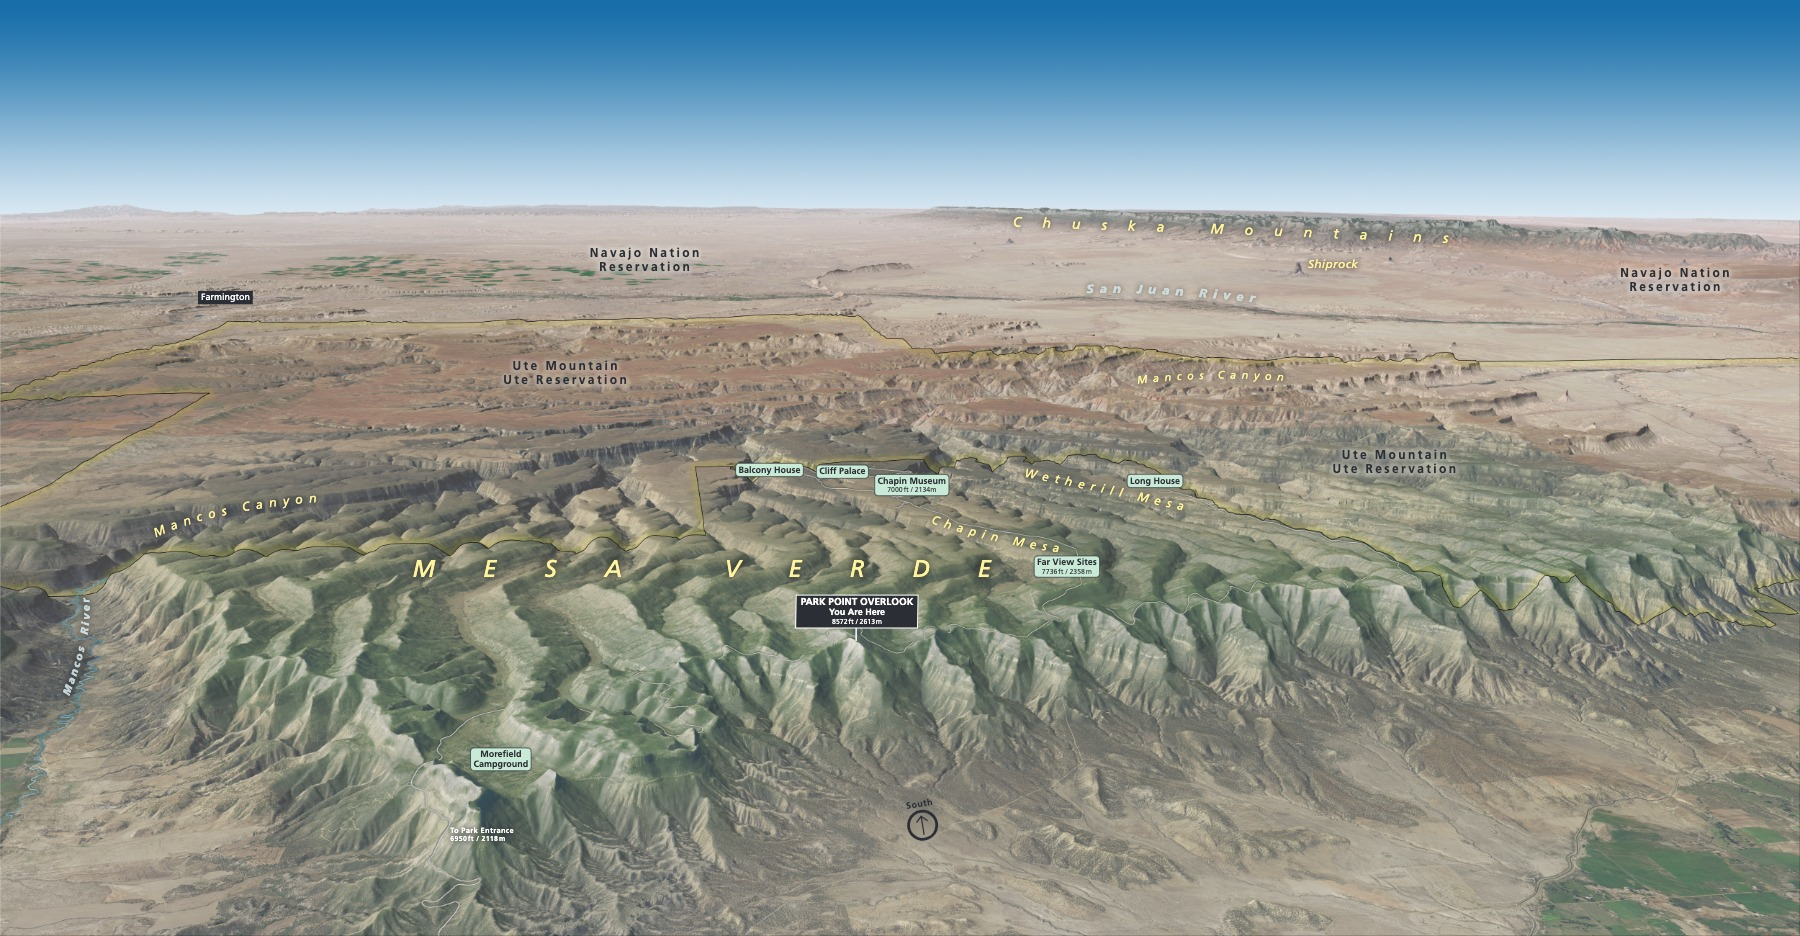 3D Panorama Map - South View - From park wayside exhibit